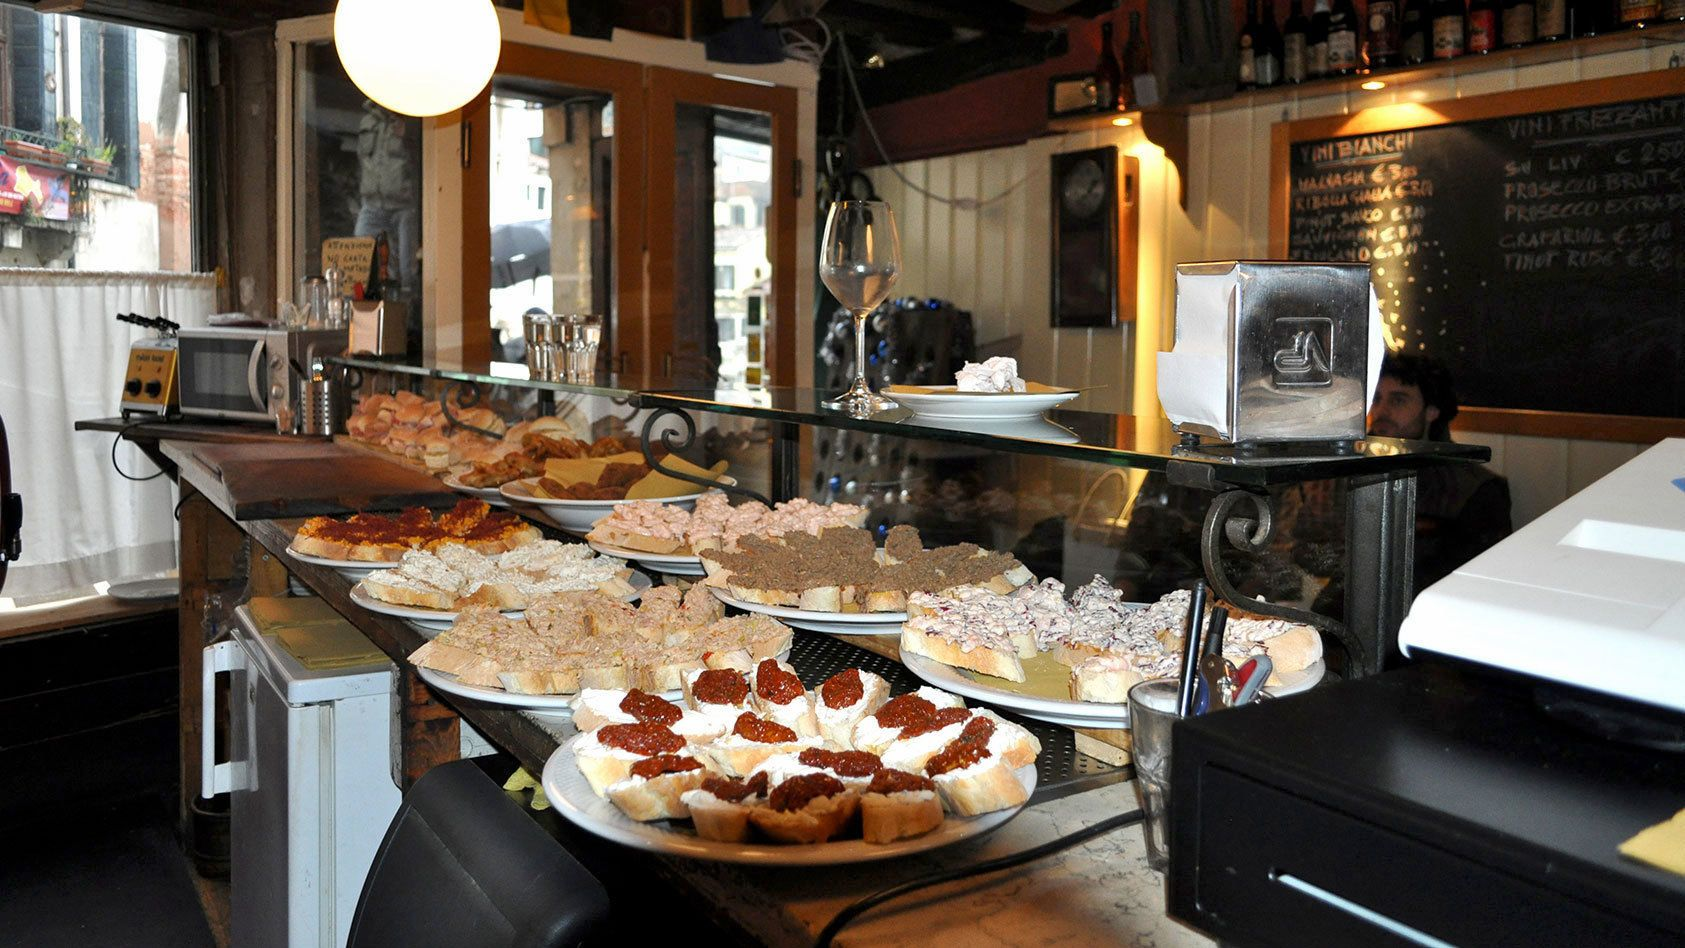 Food in a restaurant in Venice Italy